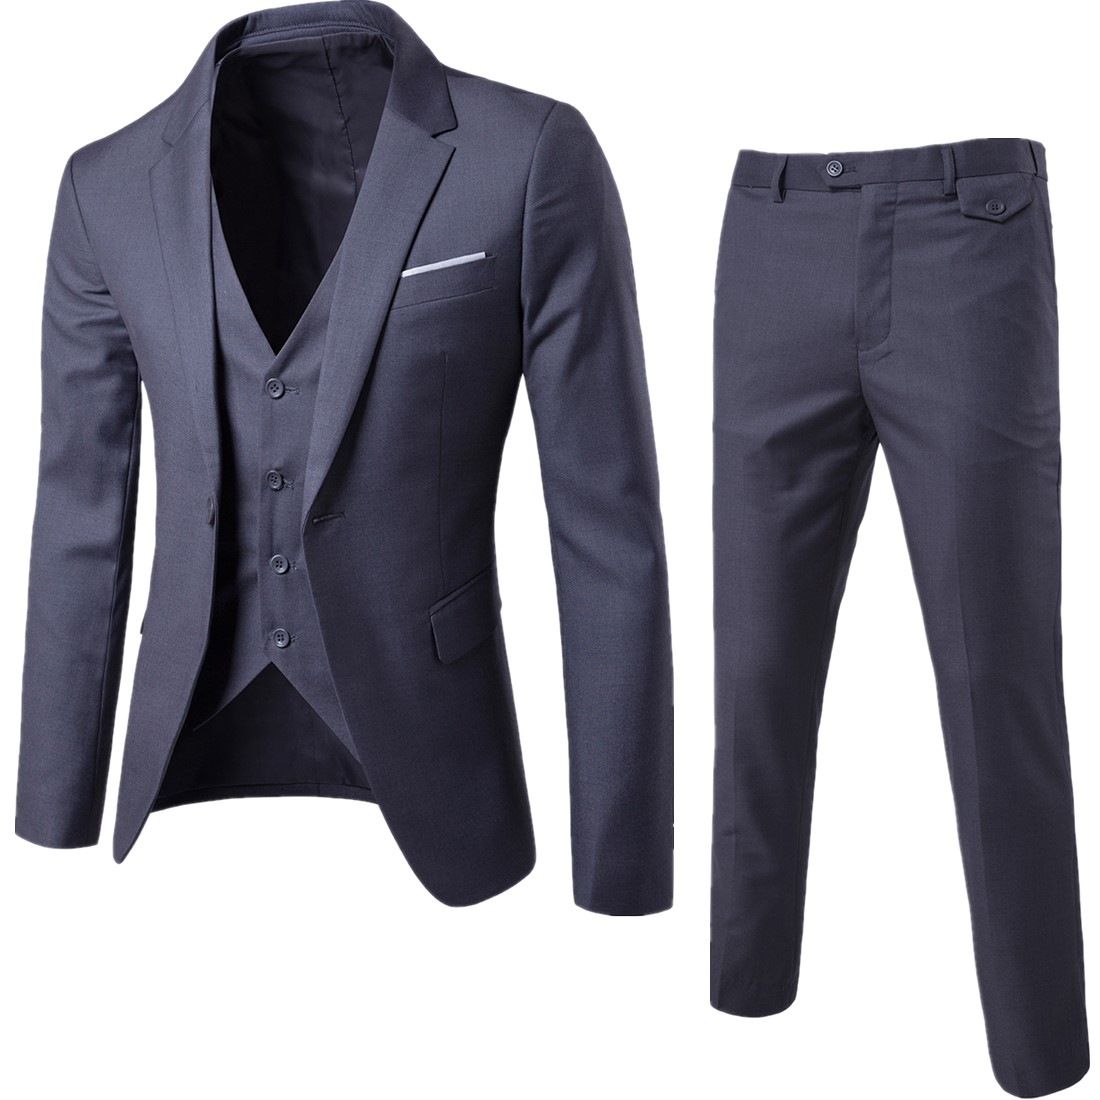 Markyi 2017 New Plus Size 6xl Mens Suits Wedding Groom Good Quality Casual Male Suits 3 Peiece (jacket+pant+vest) #2